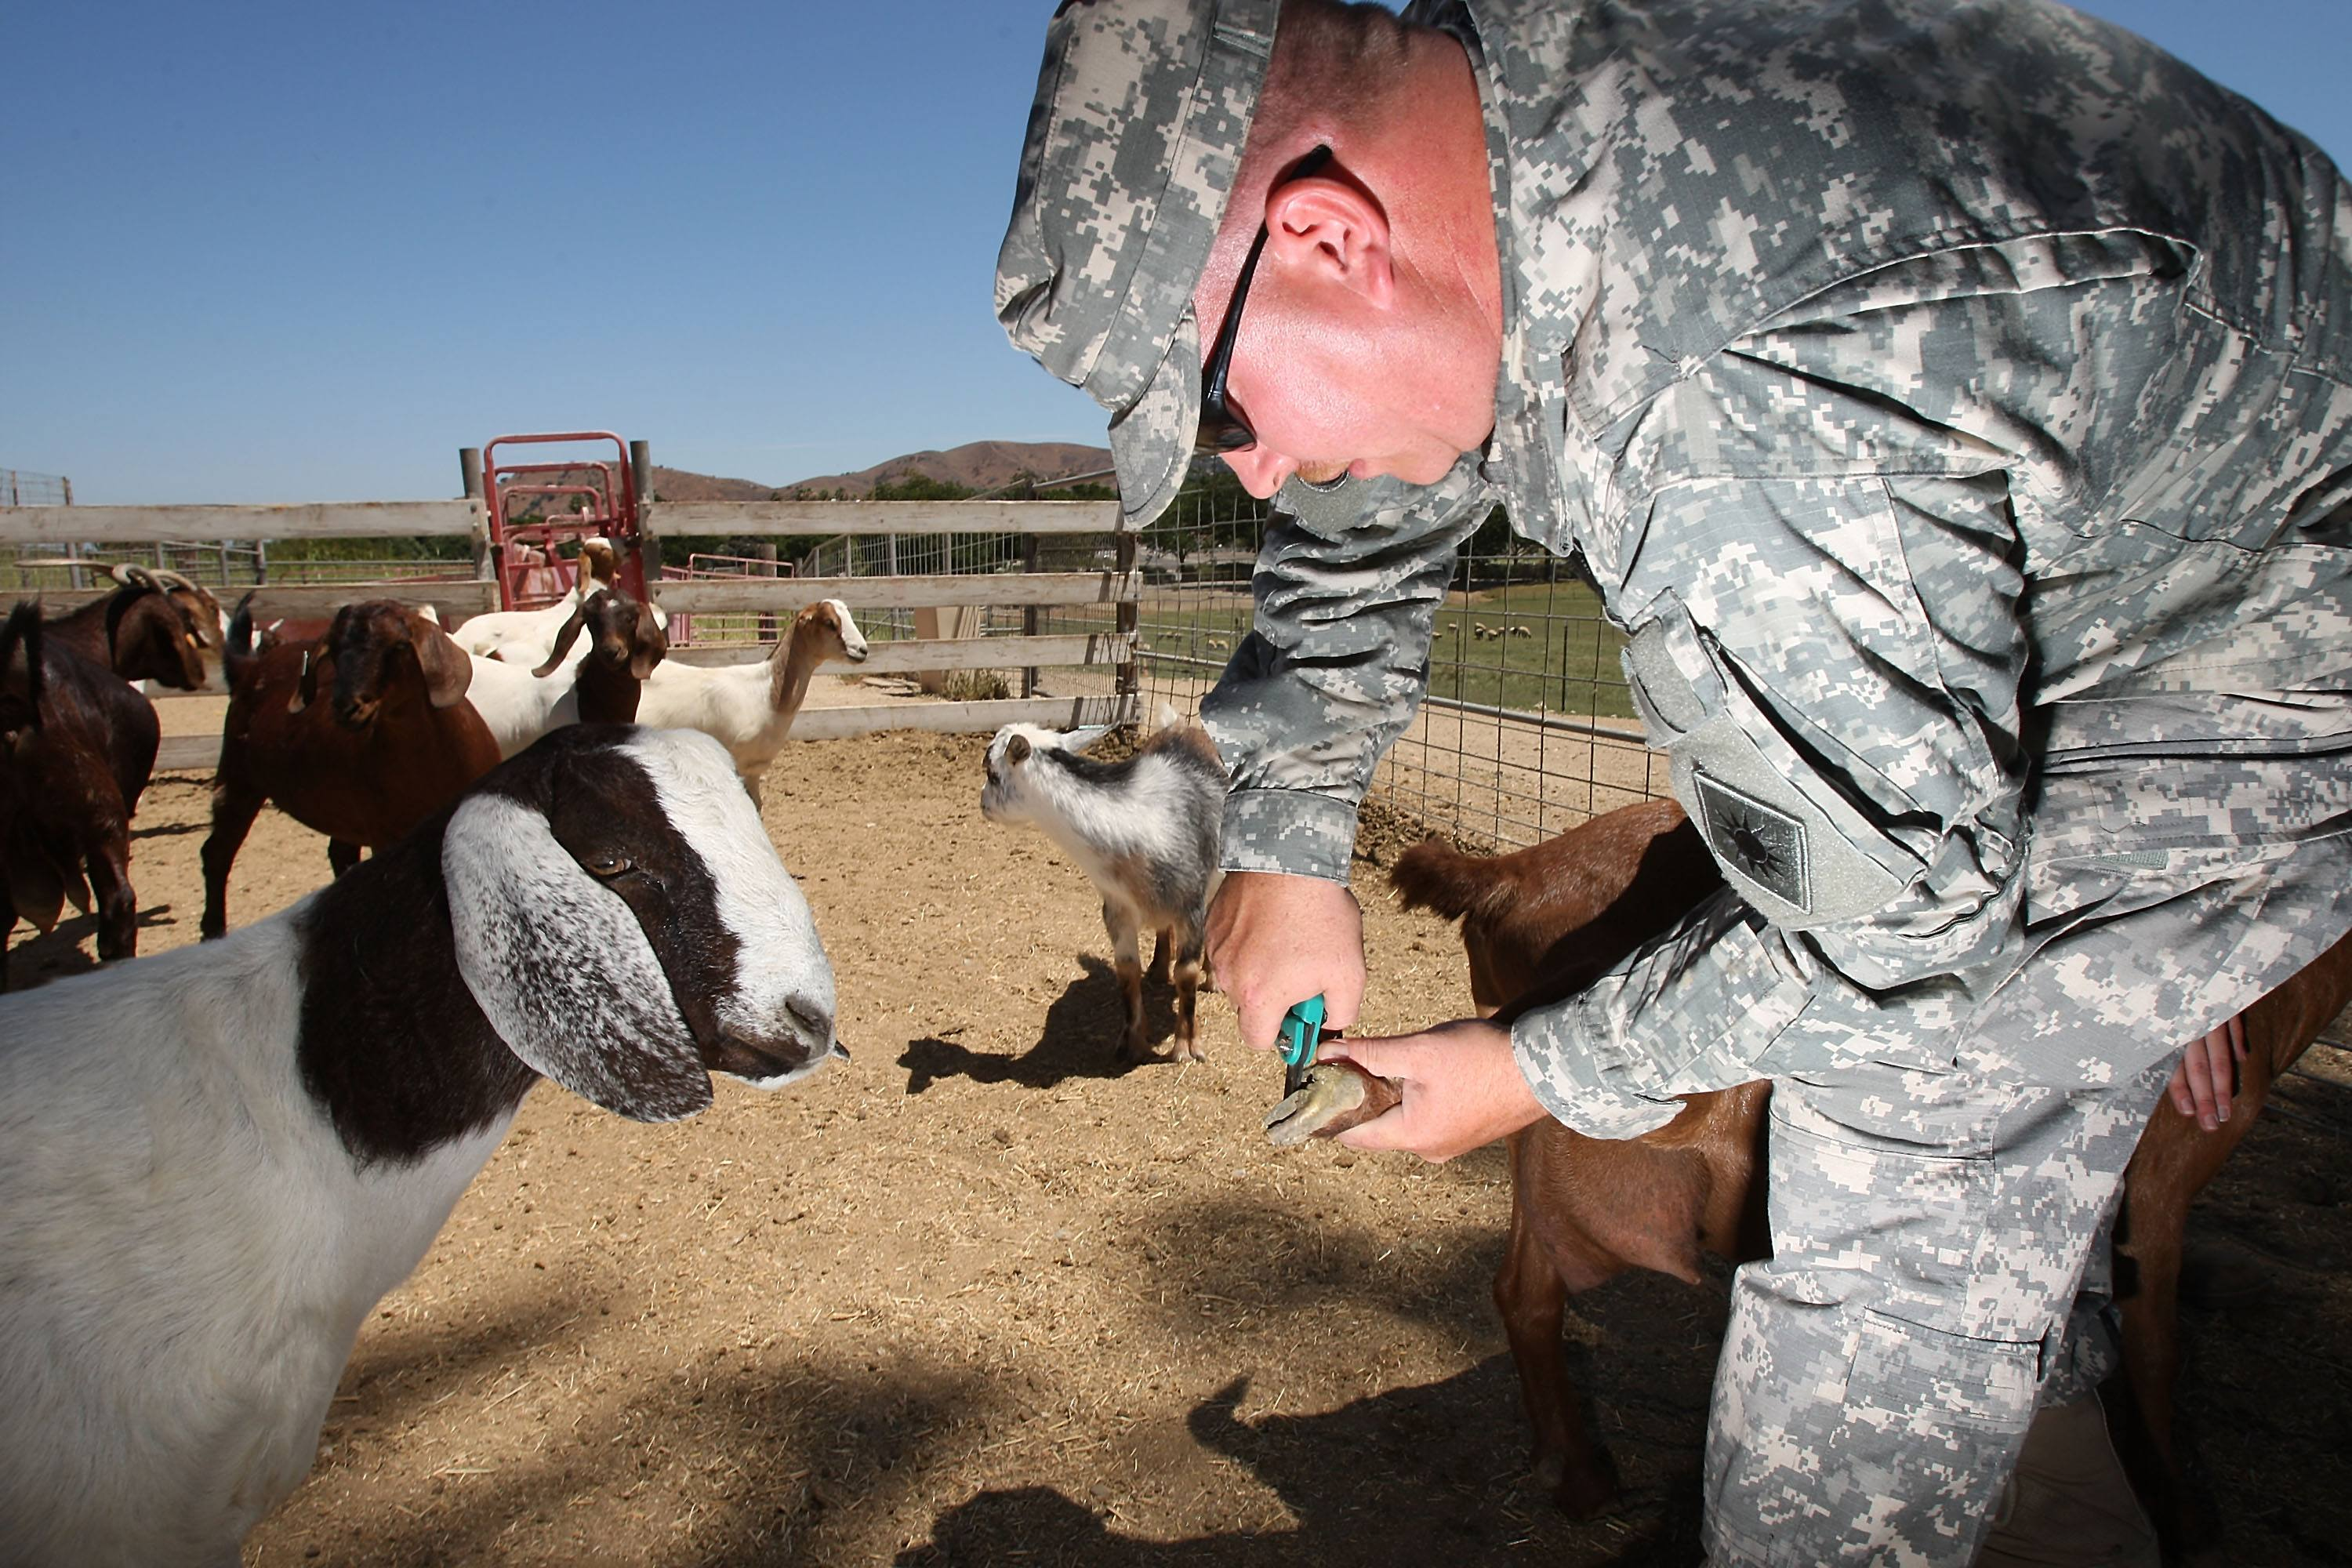 A goat watches Staff Sgt. Terry Lucas trim the hooves of another goat.